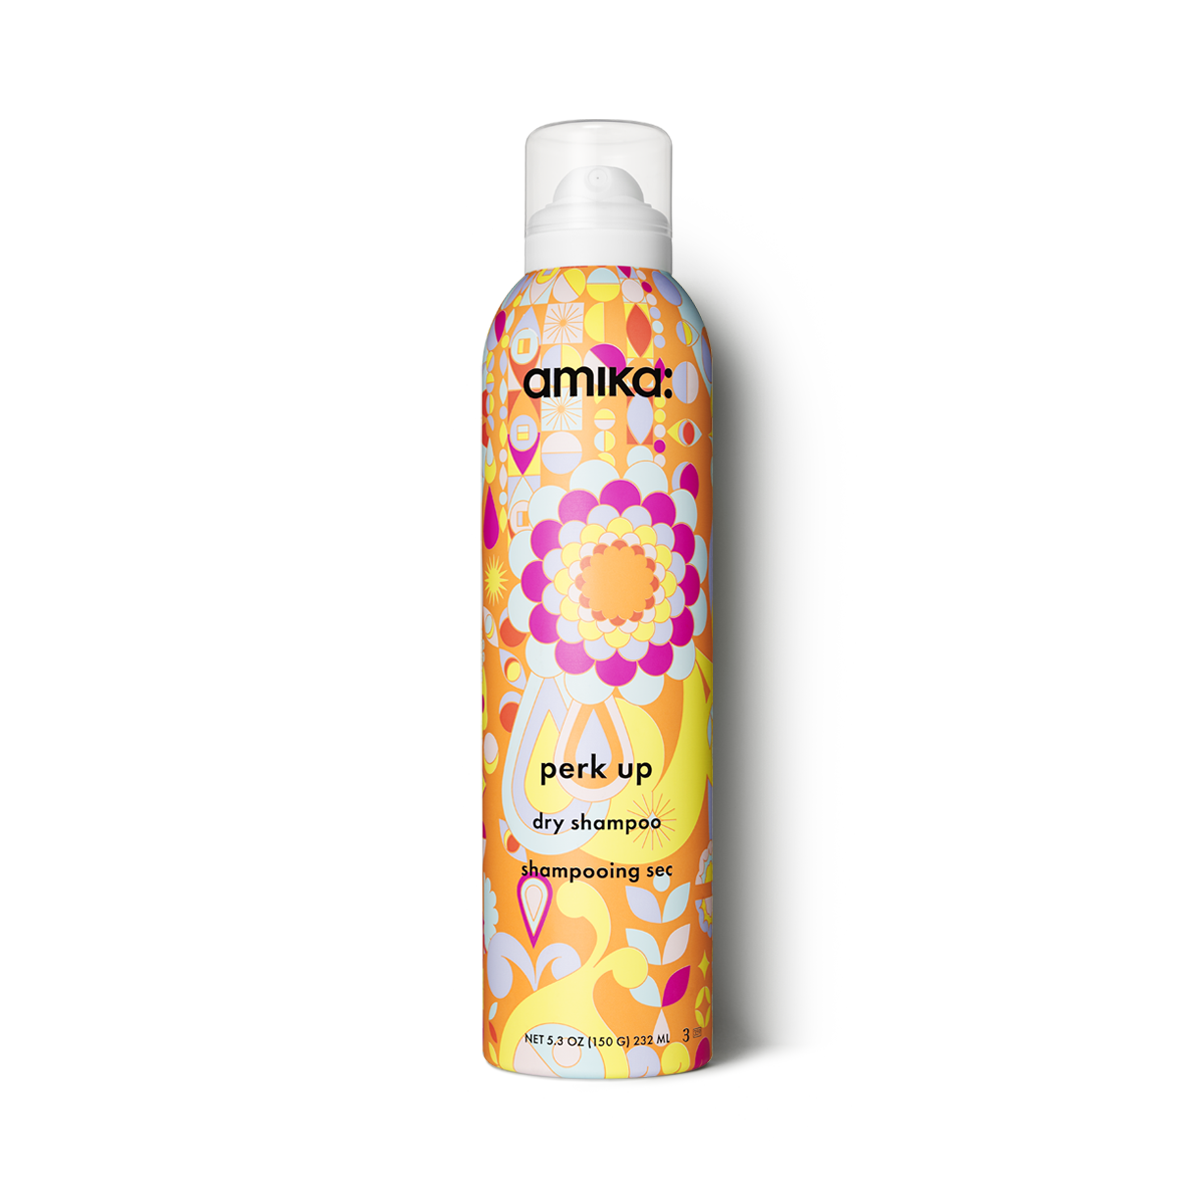 perk up <p> dry shampoo